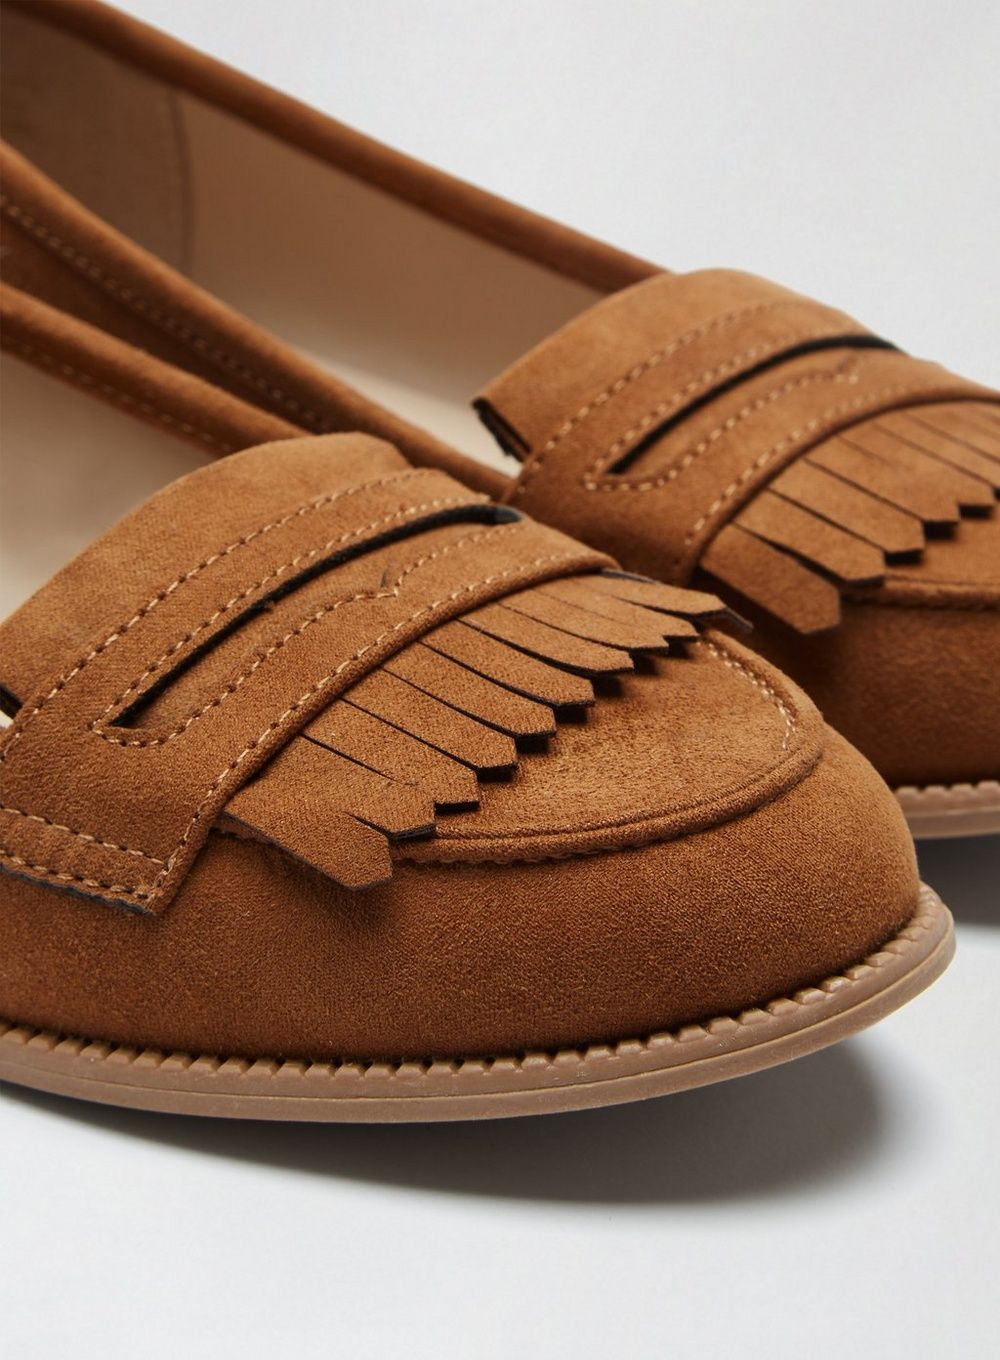 Dorothy Perkins Womens Tan Leo Loafers Comfort Smart Work Flats Shoes Moccasins